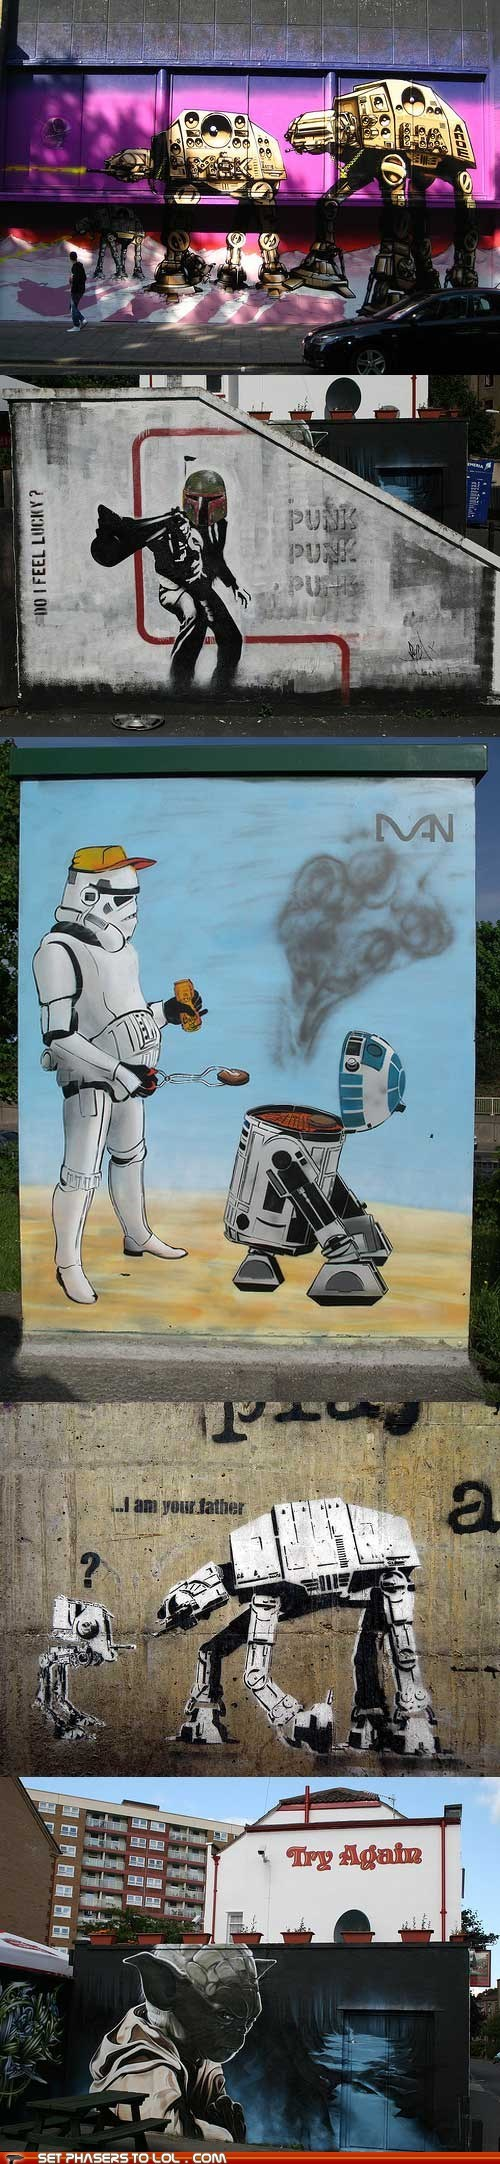 art at at boba fett darth vader Father graffiti star wars Street Art - 6129338368